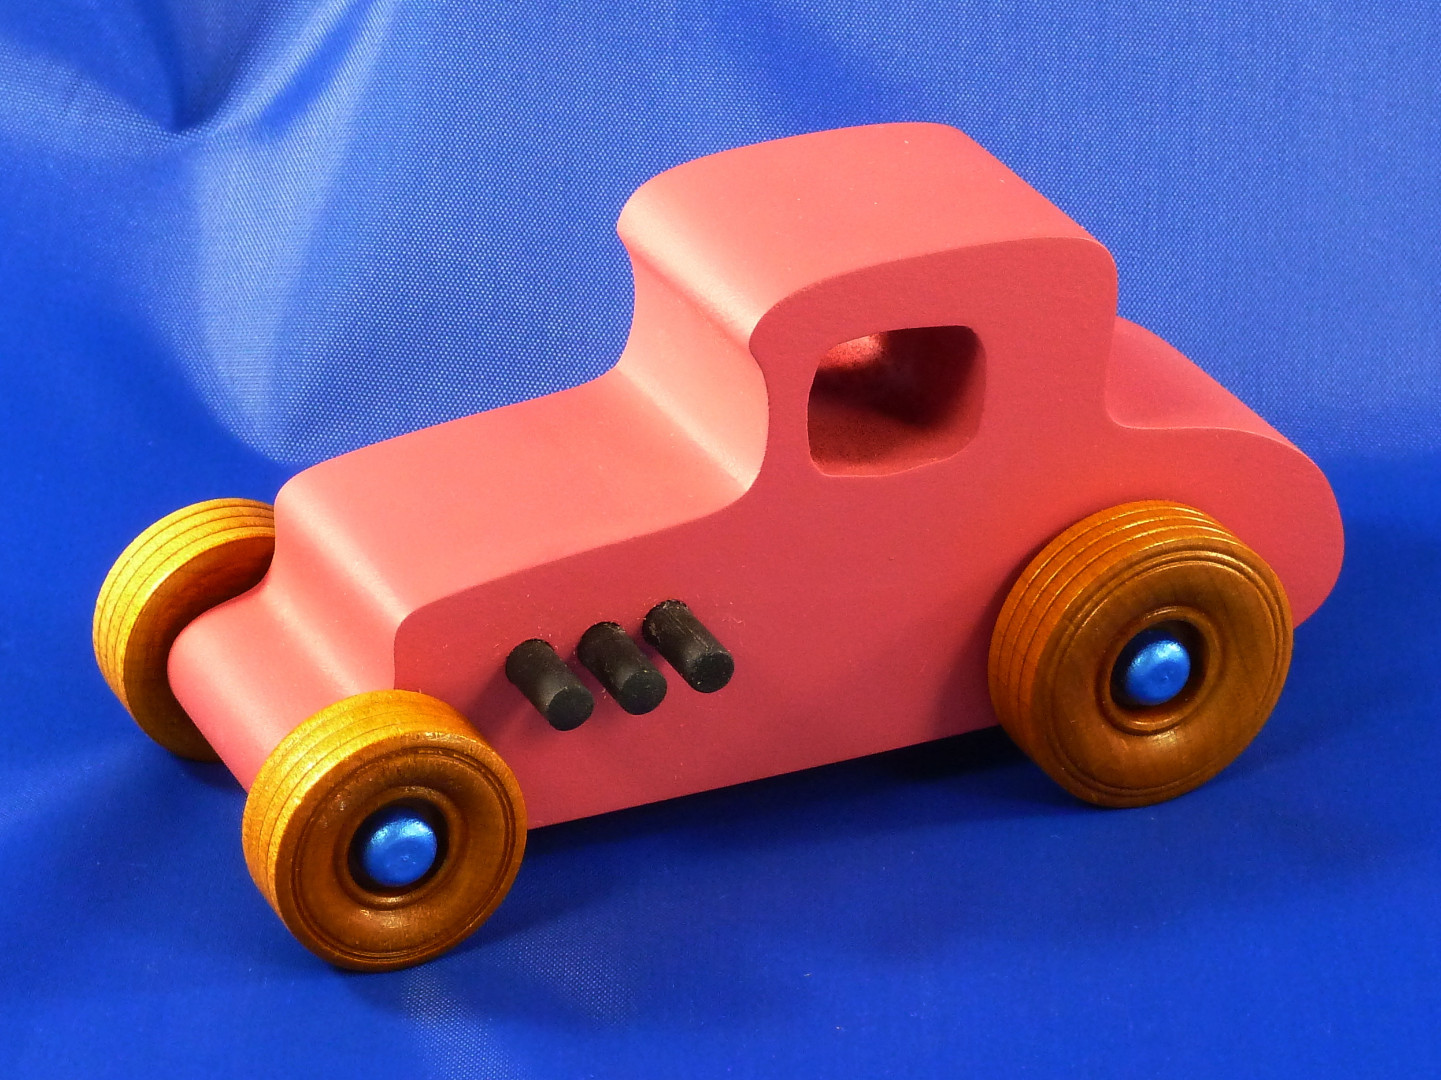 20161126-085958 - Wood Car - Hot Rod Freaky Ford - Hot Rod 27 T Coupe - MDF - Air Brushed Pink Acrlyic.jpg